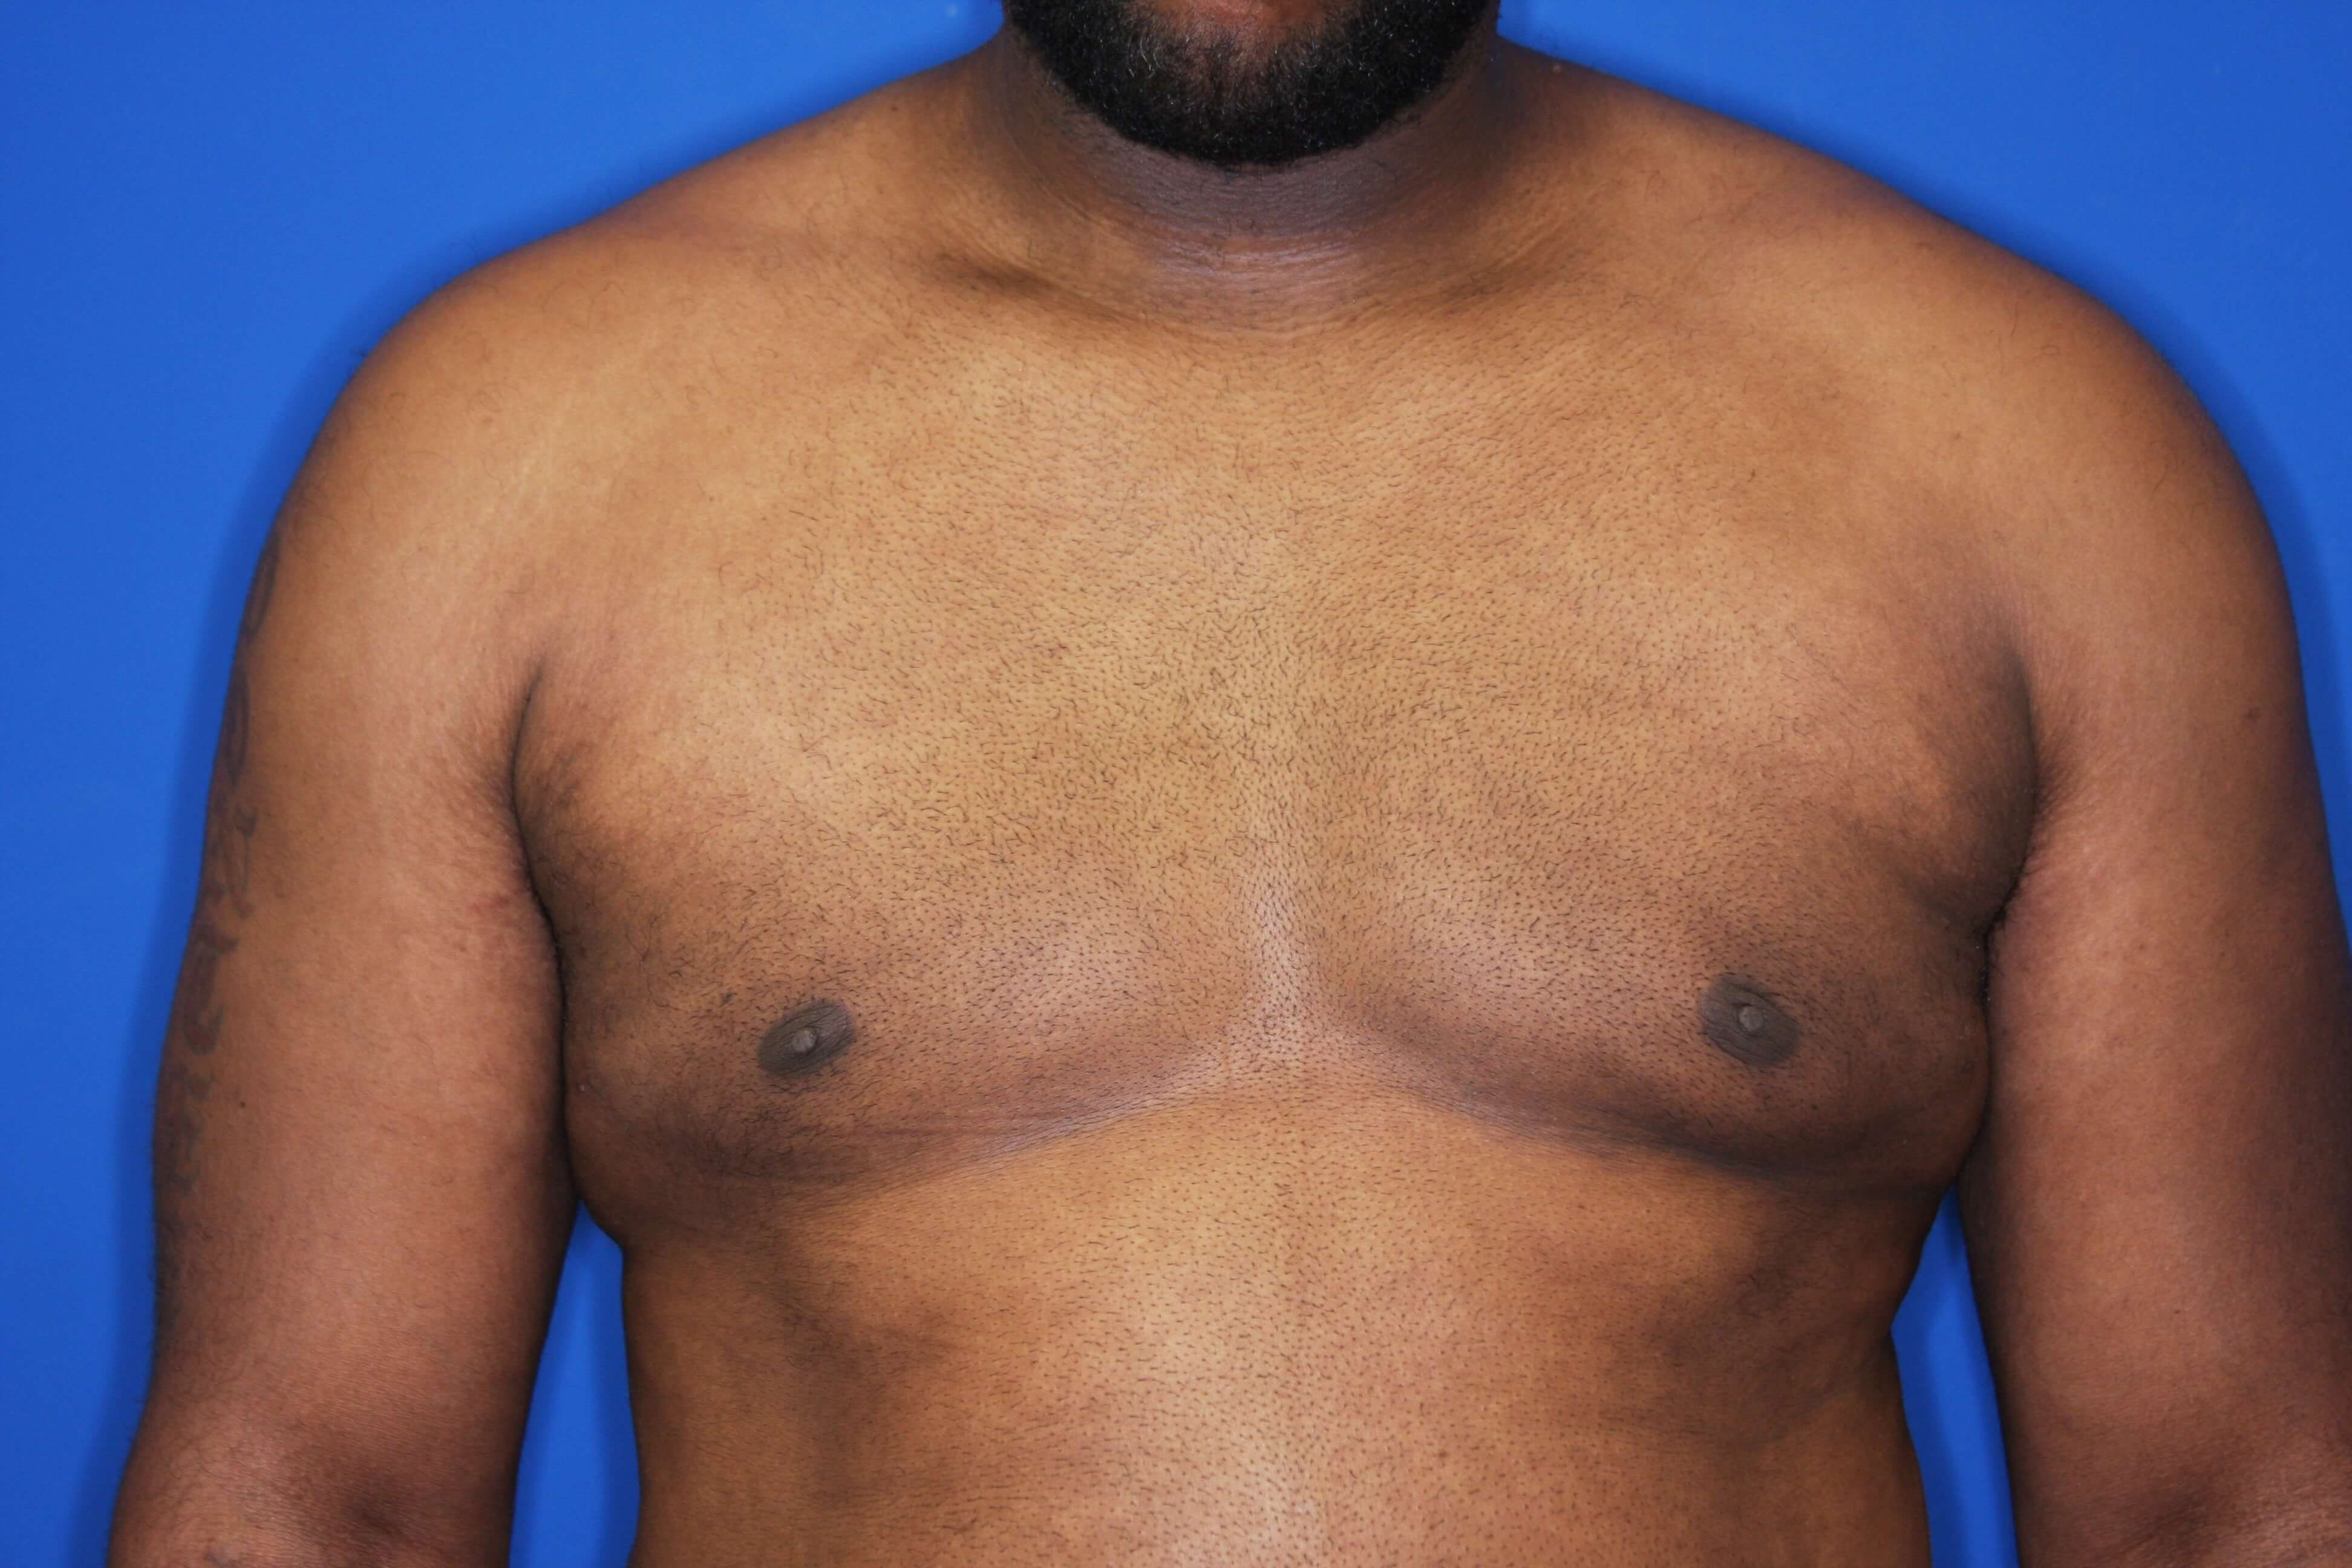 Gynecomastia Excision 4 weeks postop